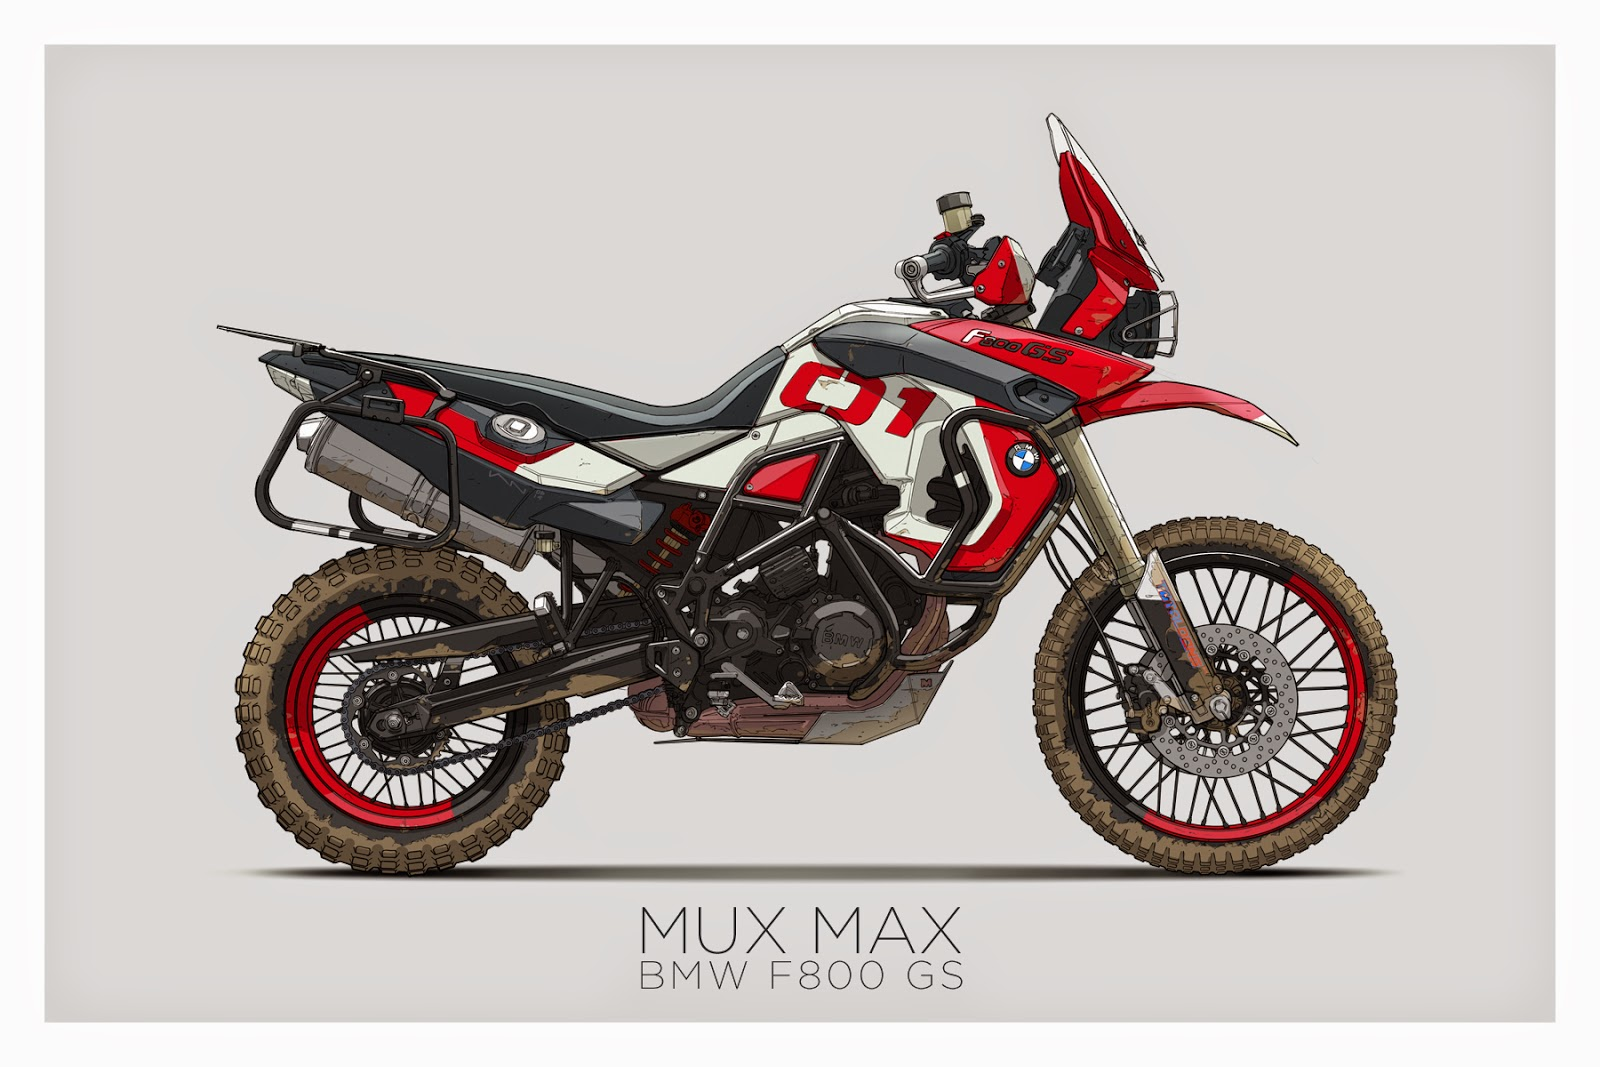 bmw_F800GS_muxmax_small